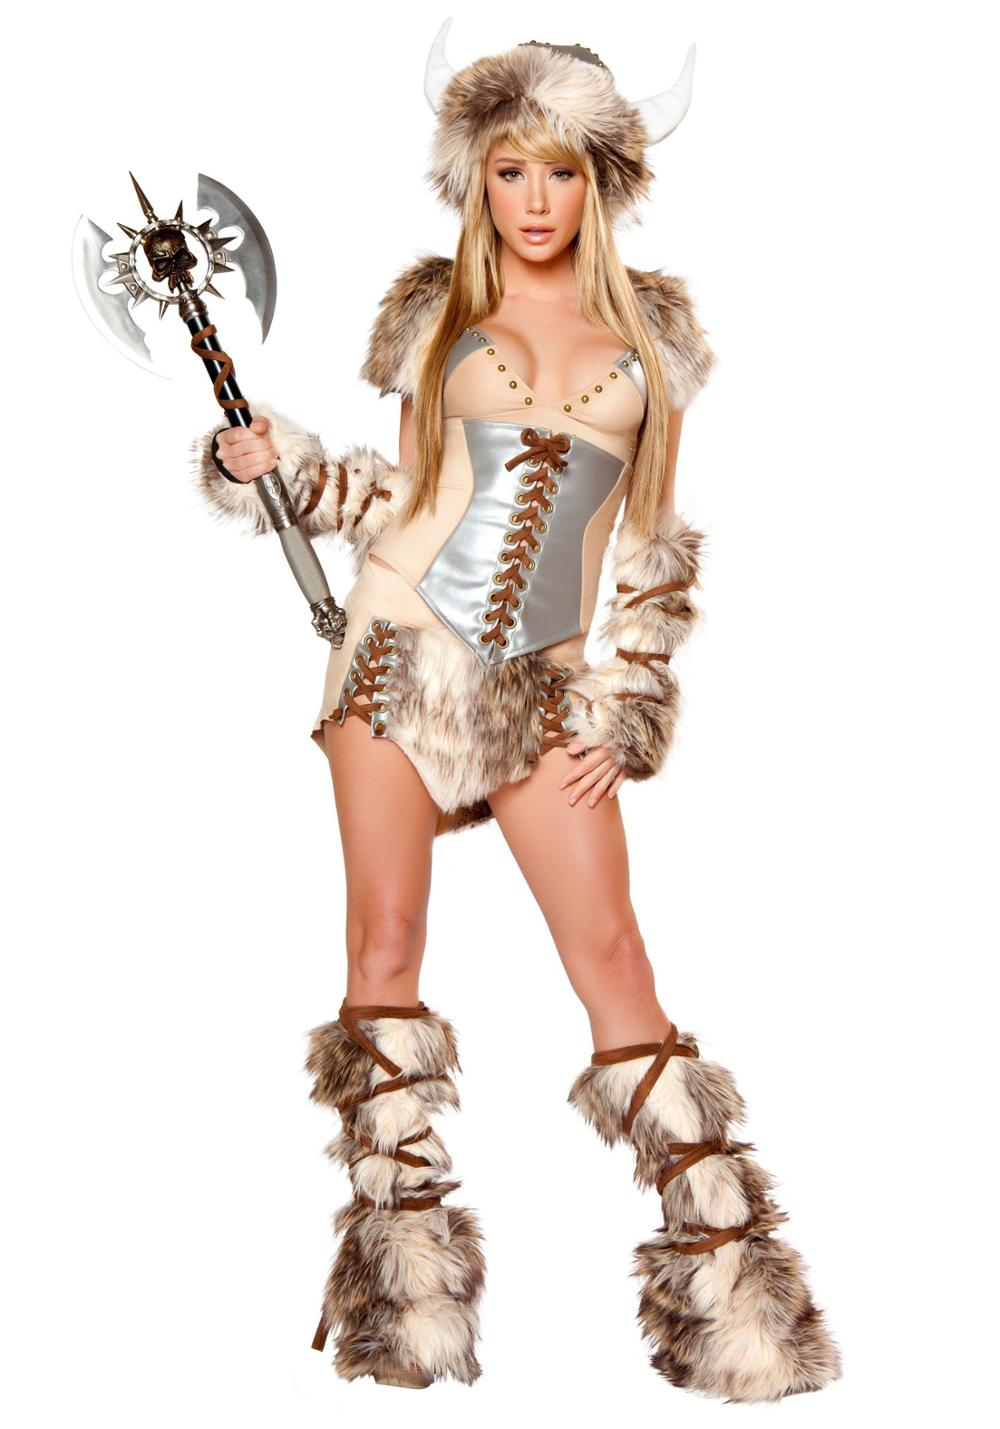 df4d0ae8 US $37.49 25% OFF|Women's Sexy Deluxe Valiant Viking Costume Halloween  Cosplay Fantasy Outfit-in Sexy Costumes from Novelty & Special Use on ...